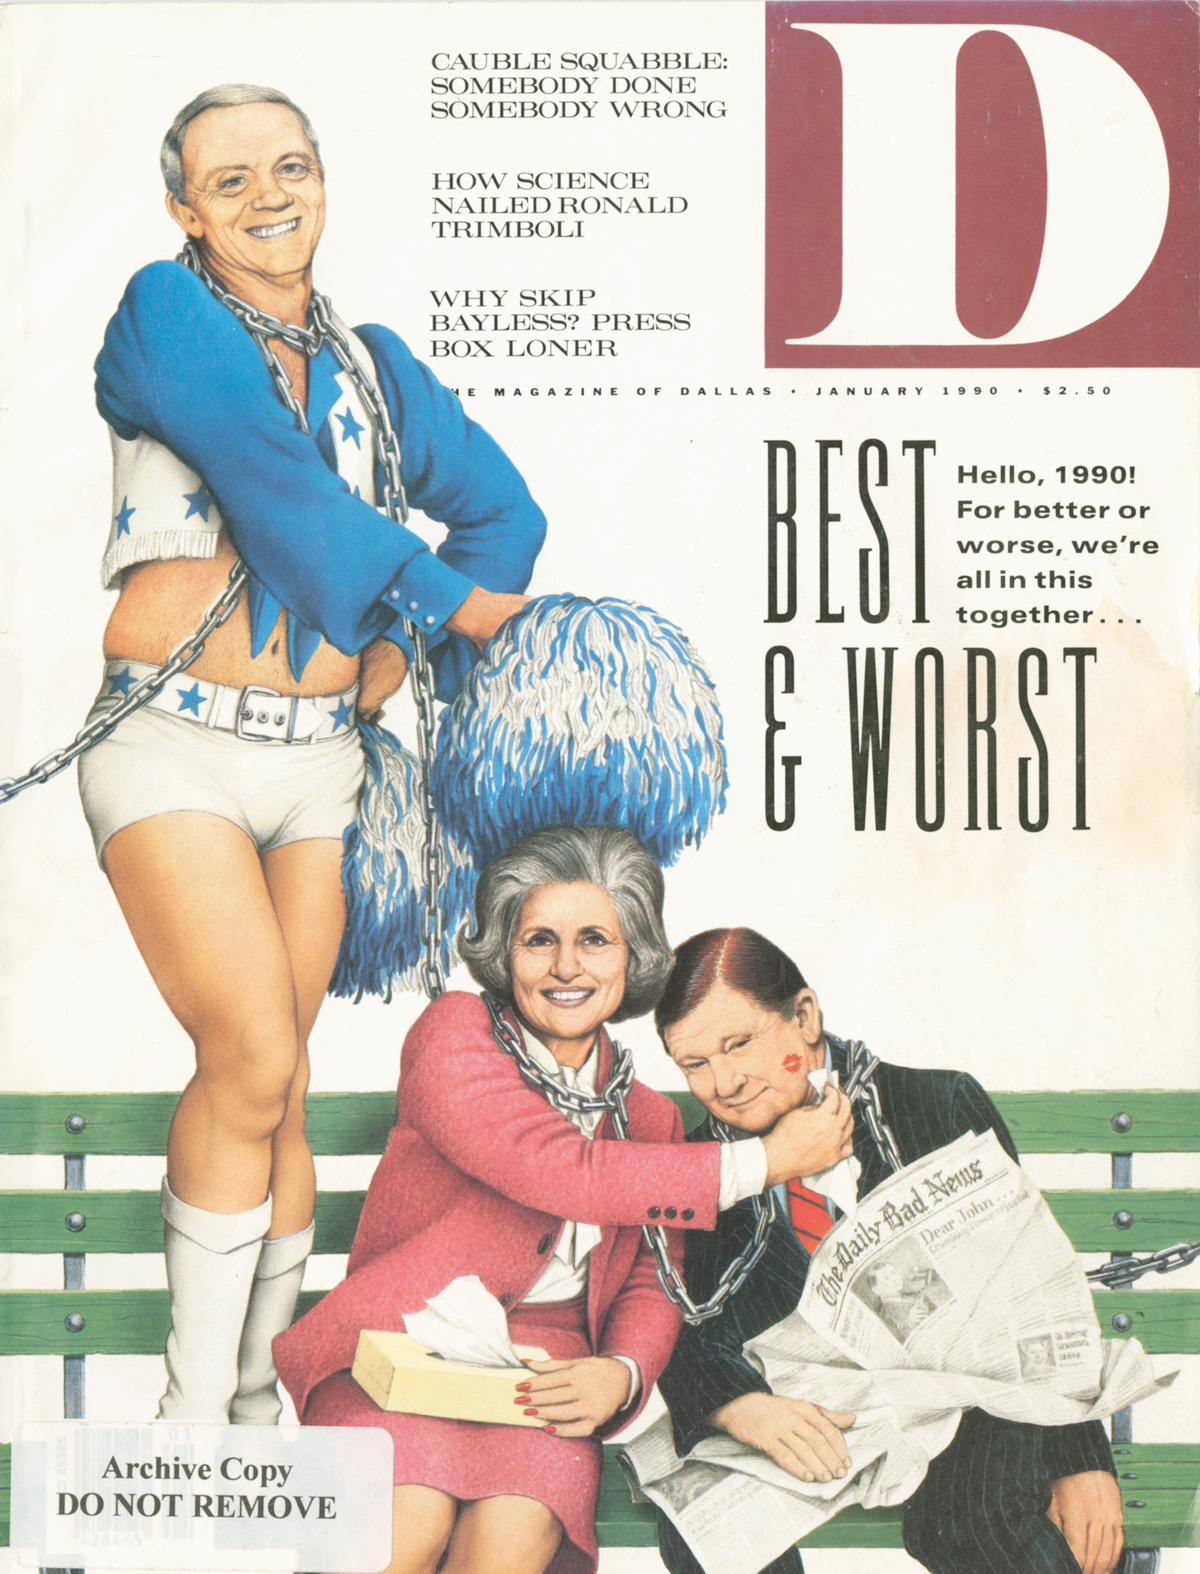 January 1990 cover